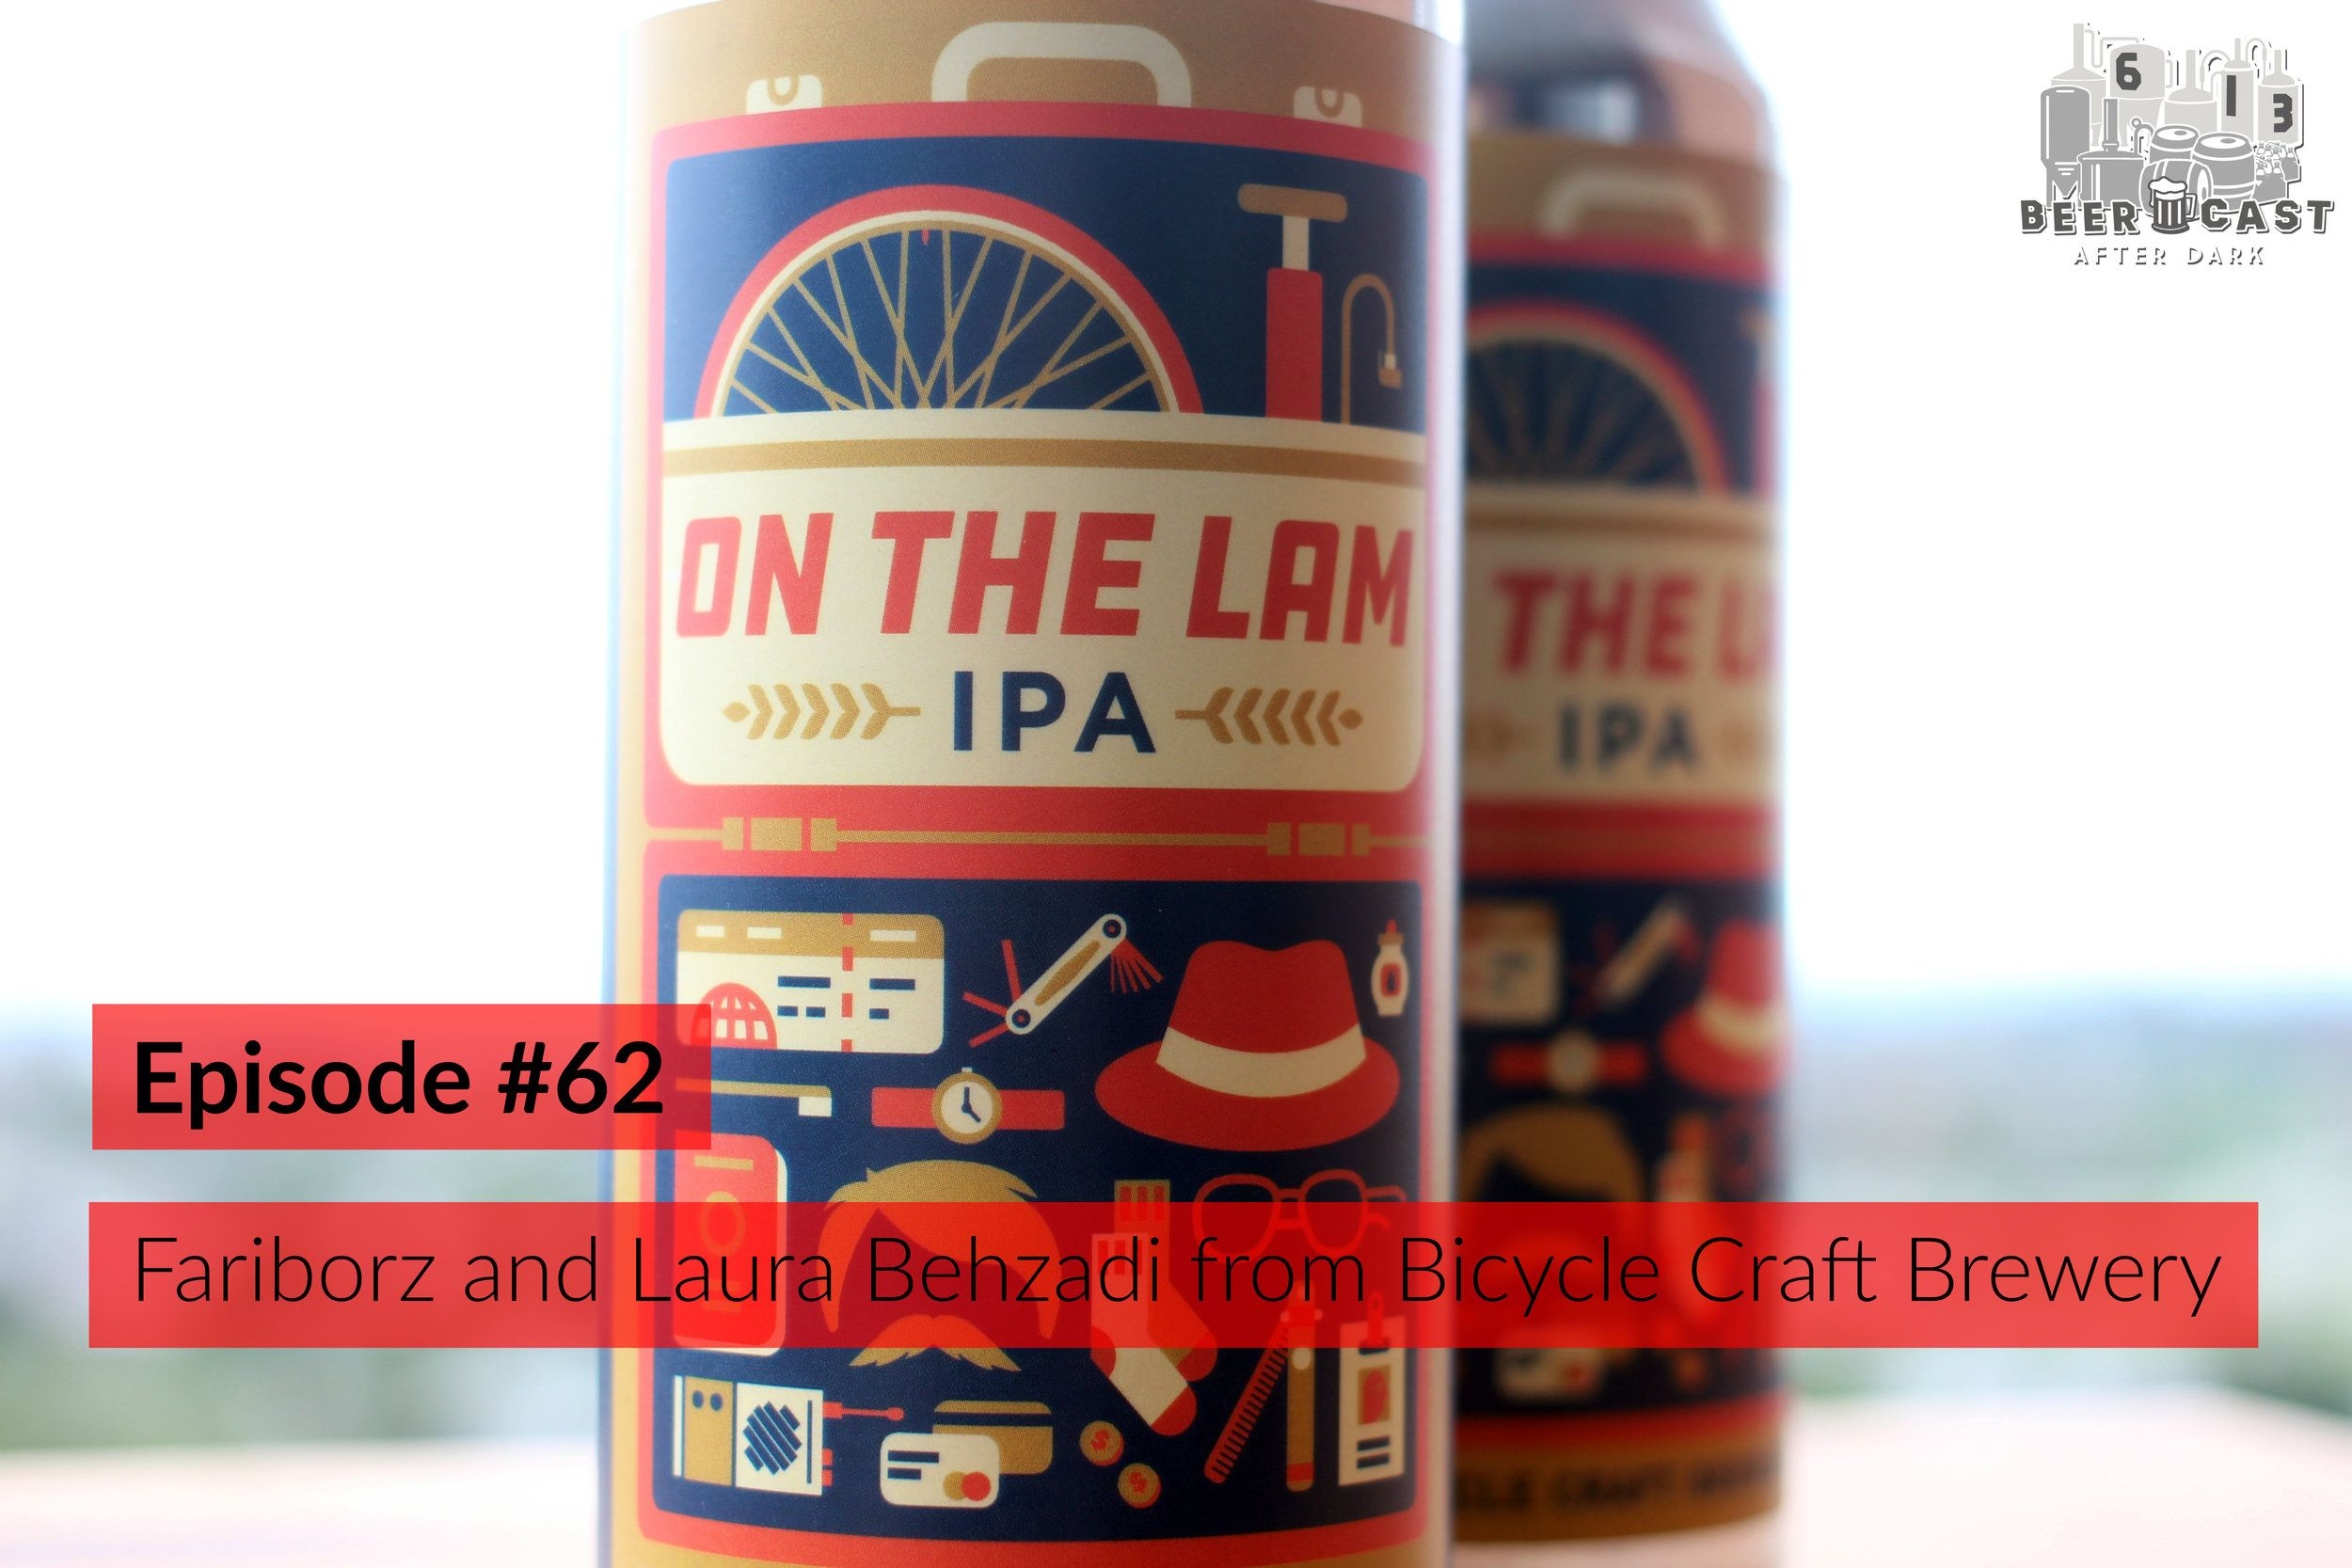 Pin By Katy Watts On 613beercast Craft Brewery Bicycle Crafts Brewery